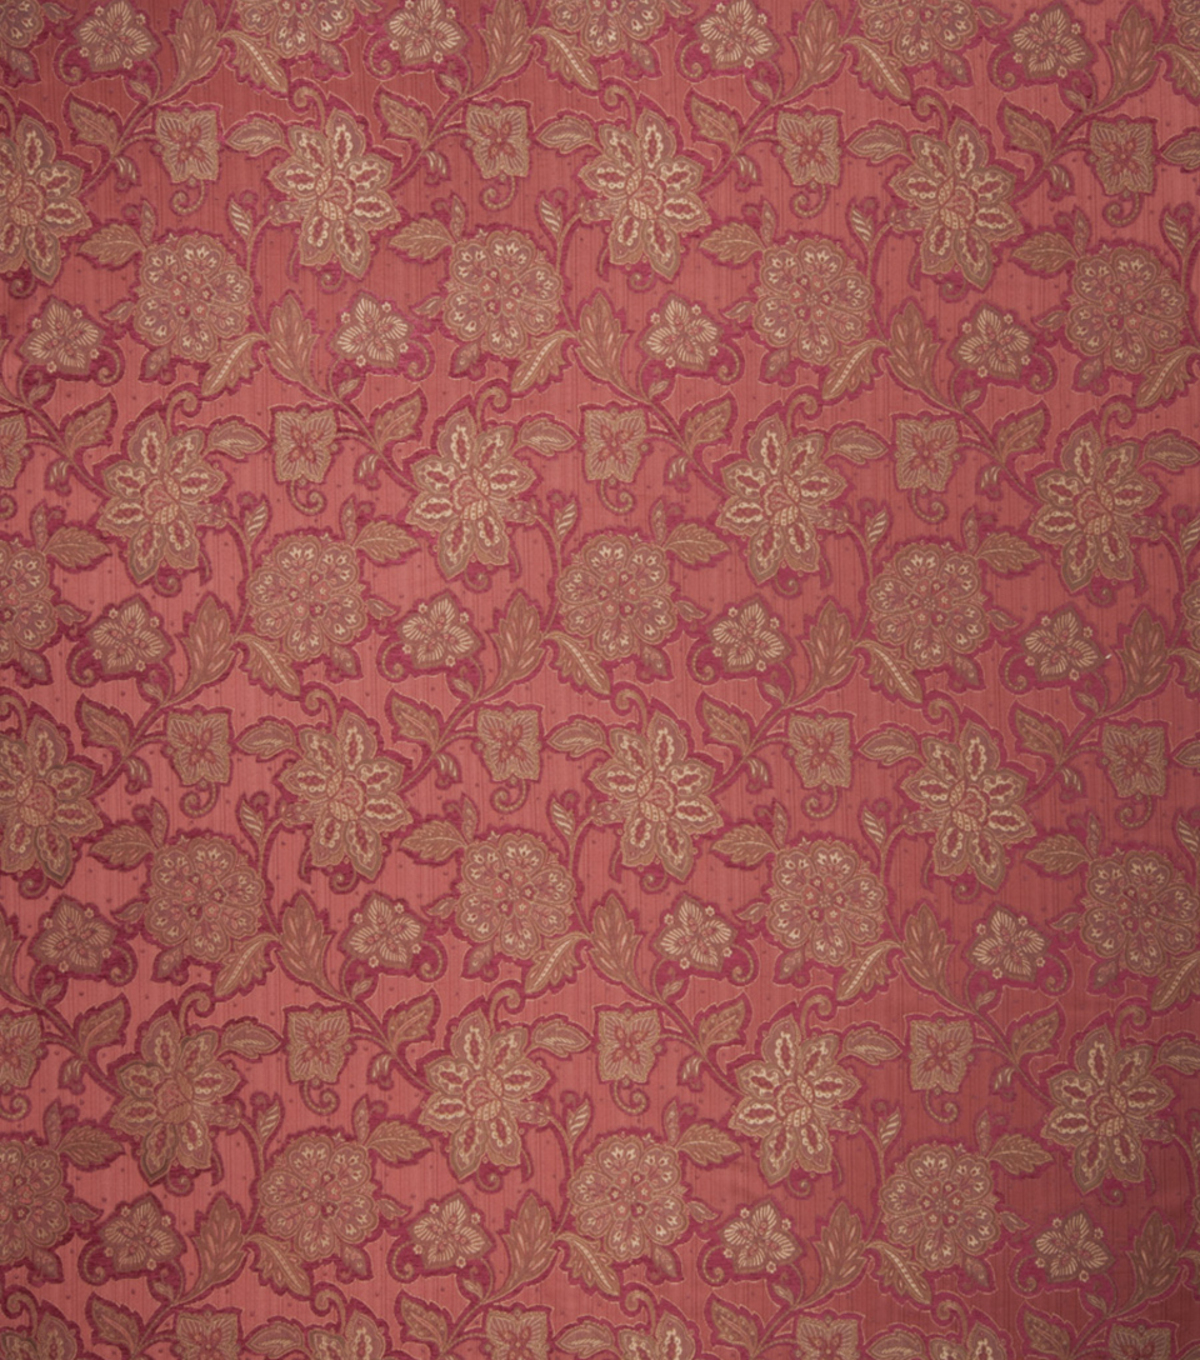 Home Decor 8\u0022x8\u0022 Fabric Swatch-Print Fabric Eaton Square Walters Cinnabar